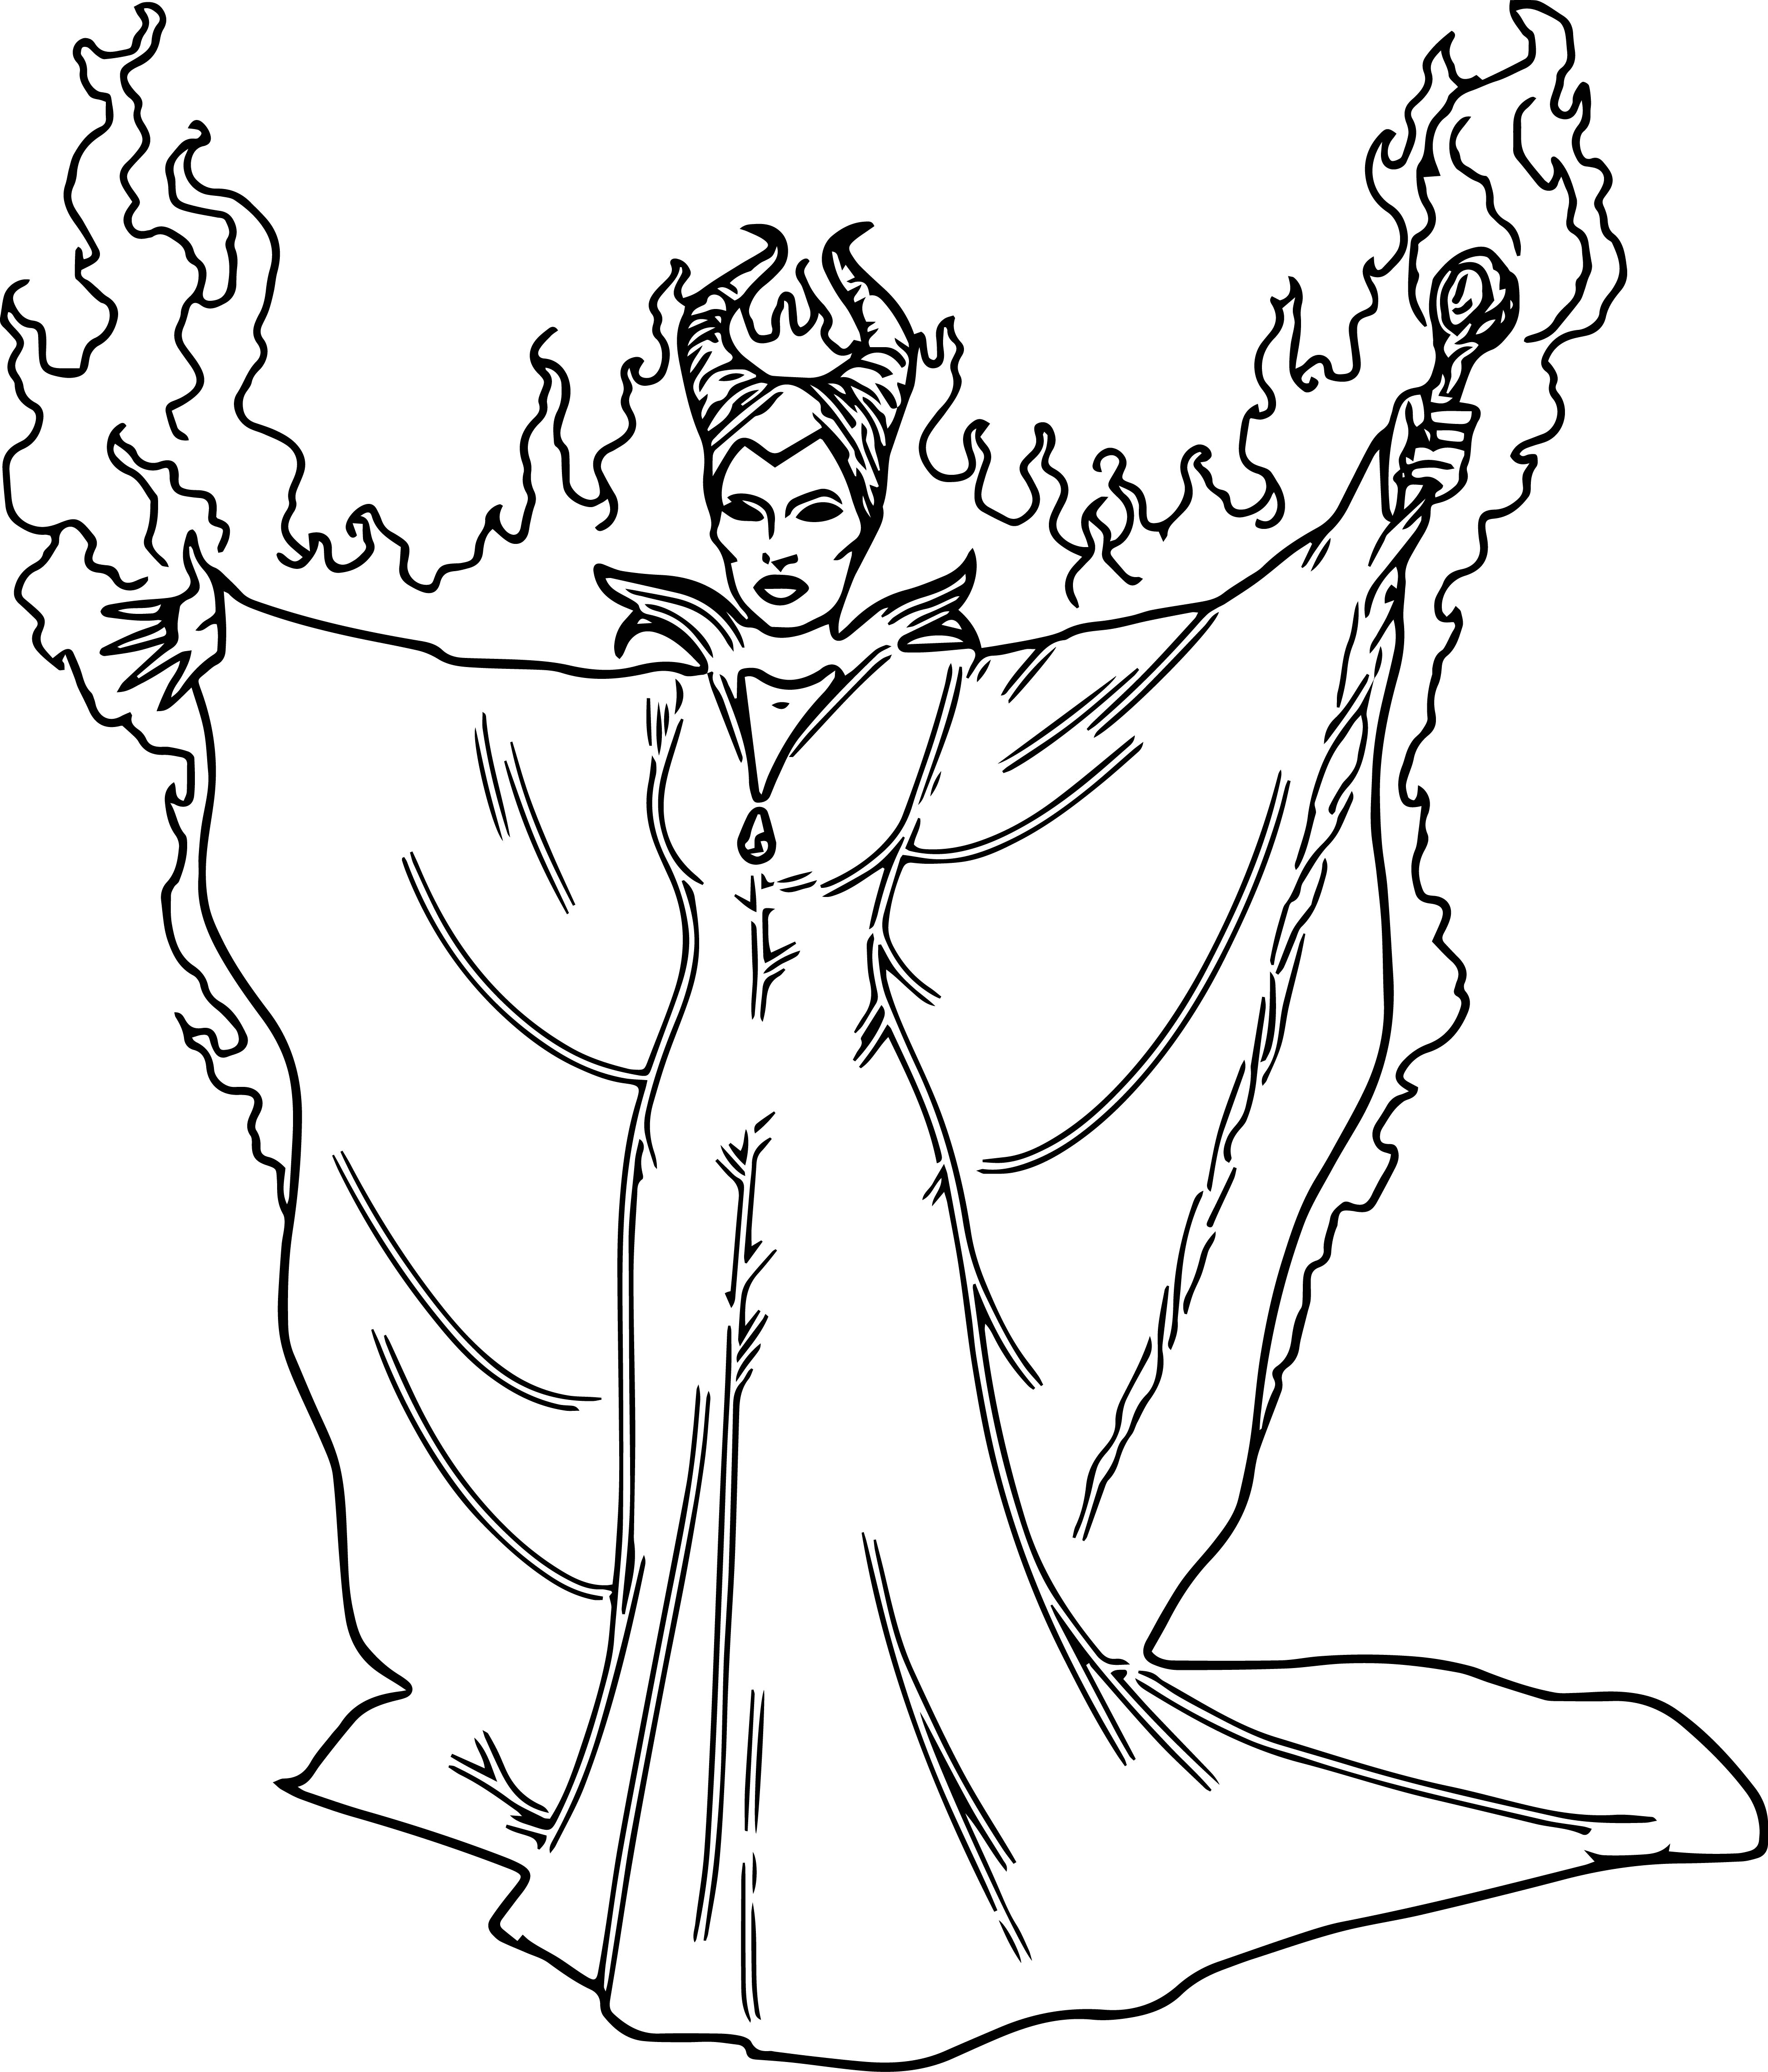 maleficent-coloring-page-0023-q1